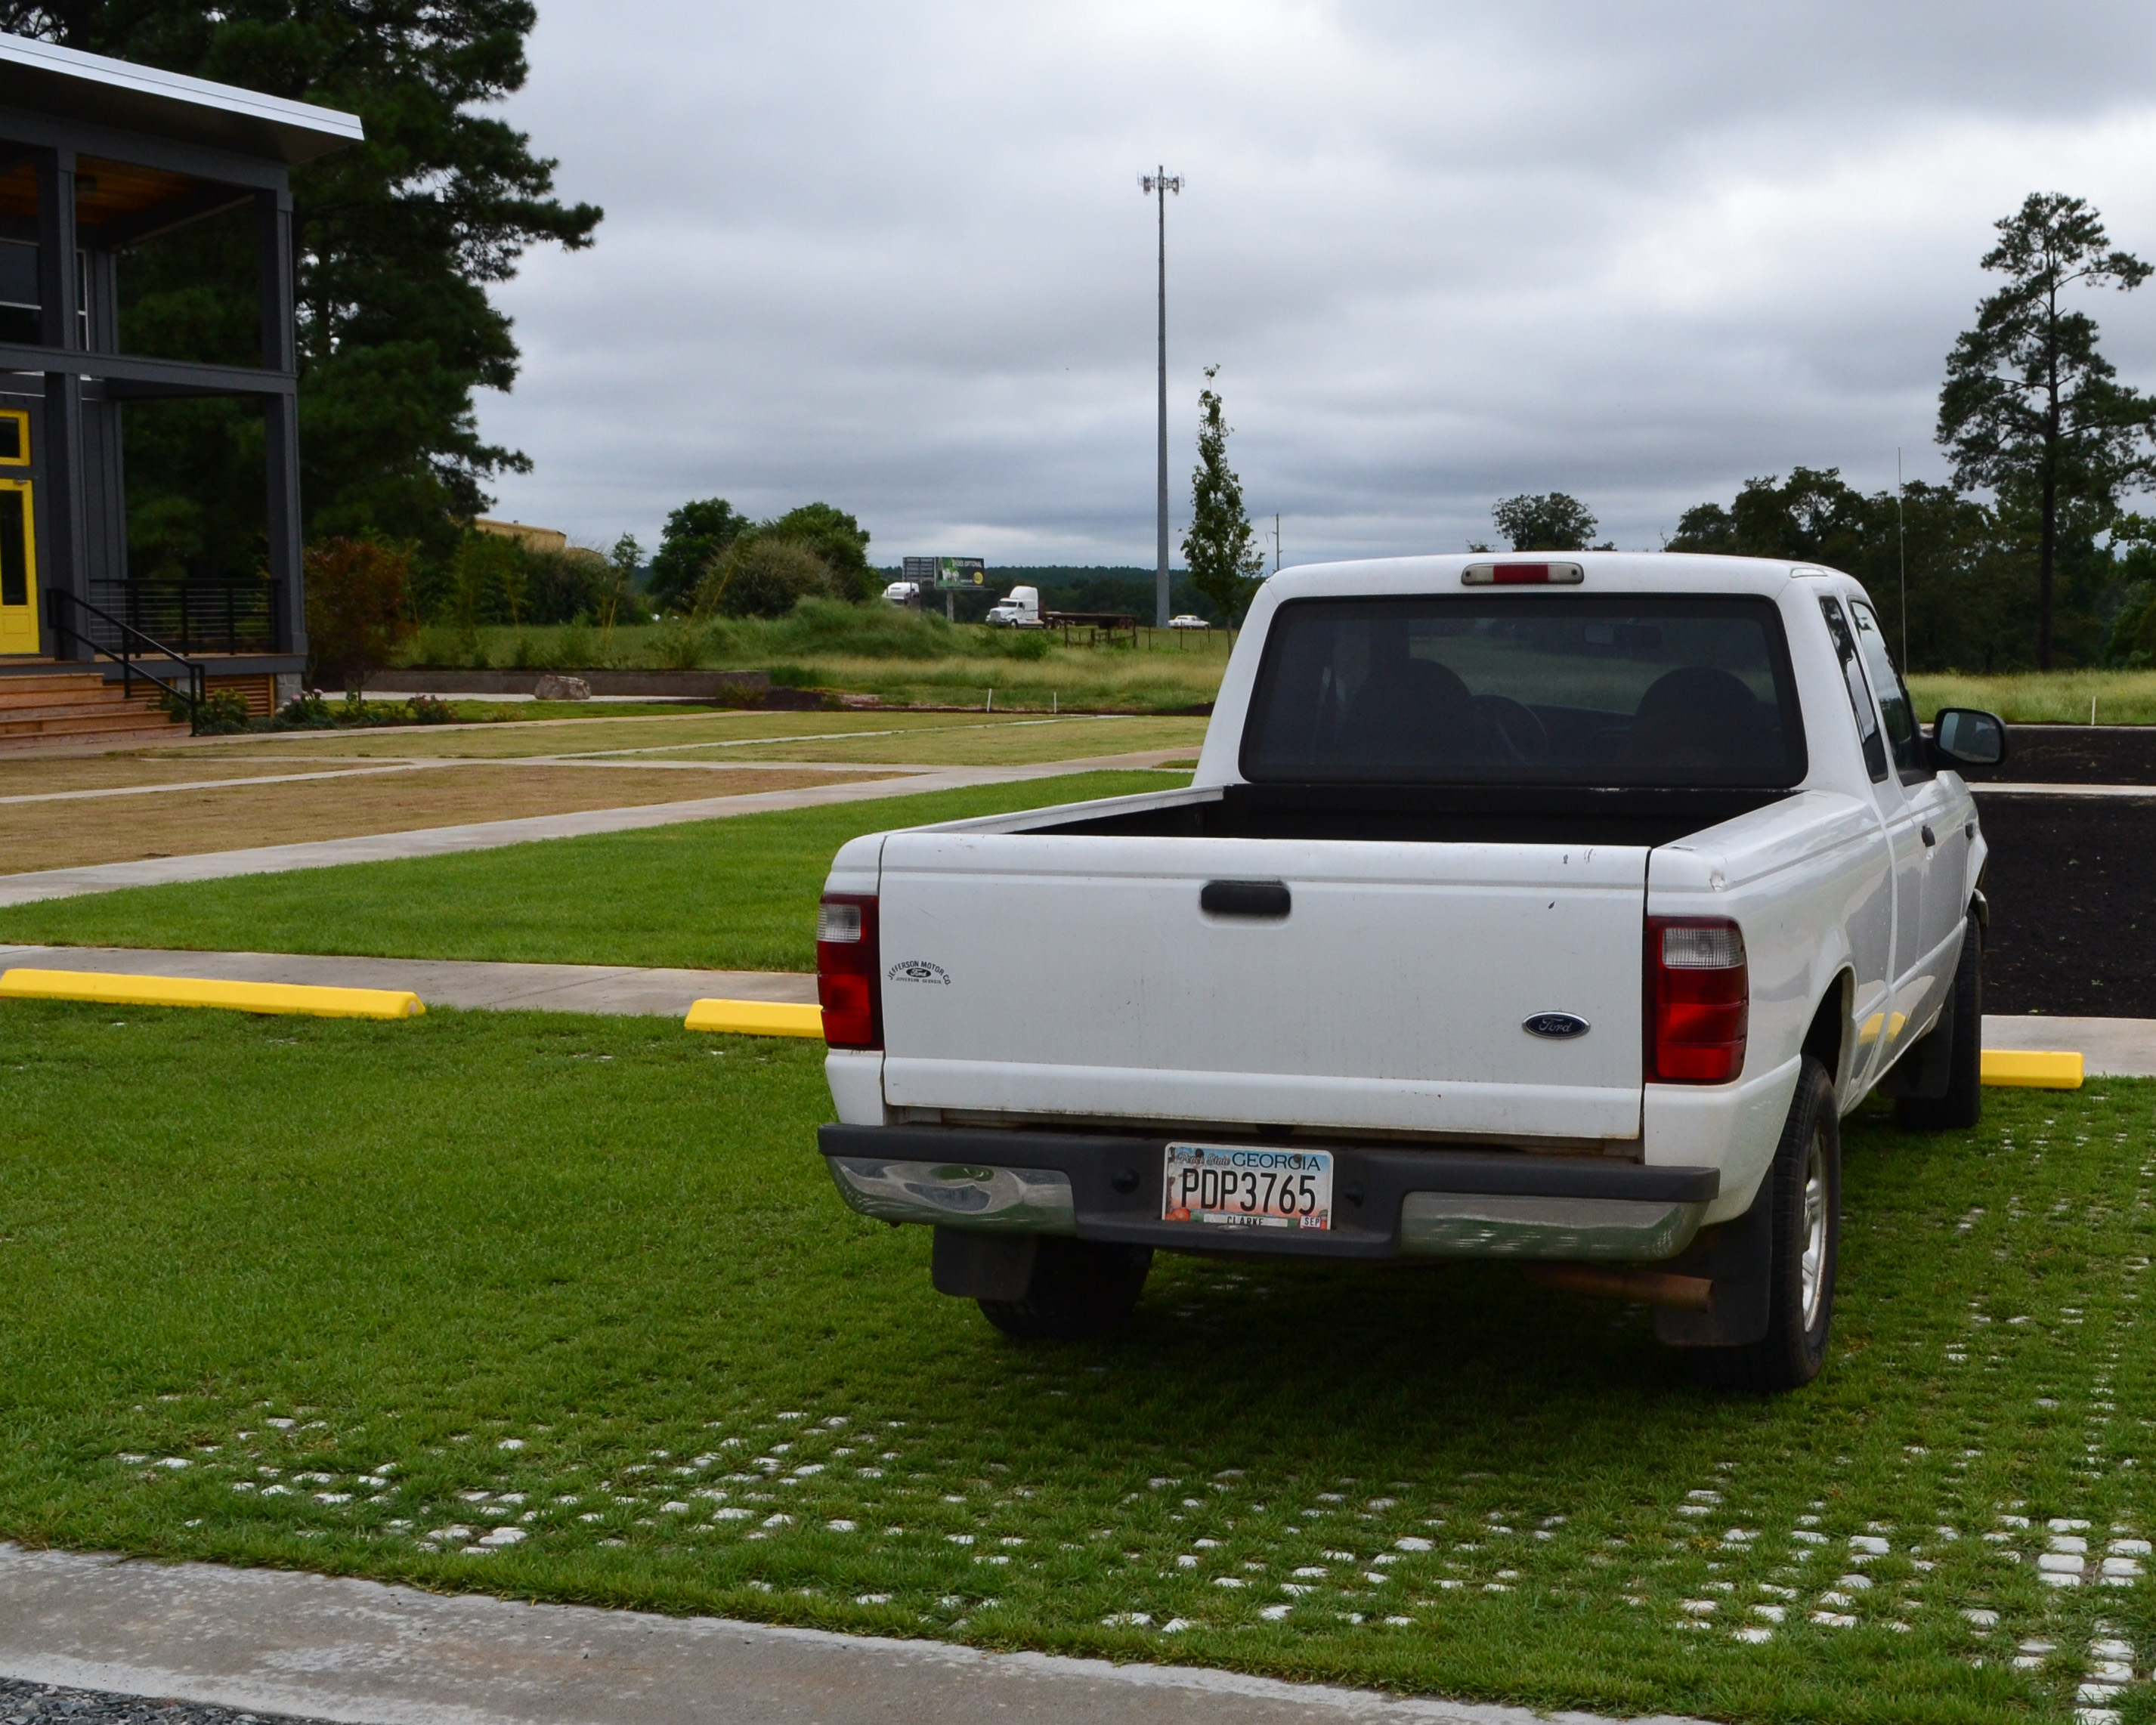 Installing Drivable Grass with Soil3 Compost [Video] - featured image